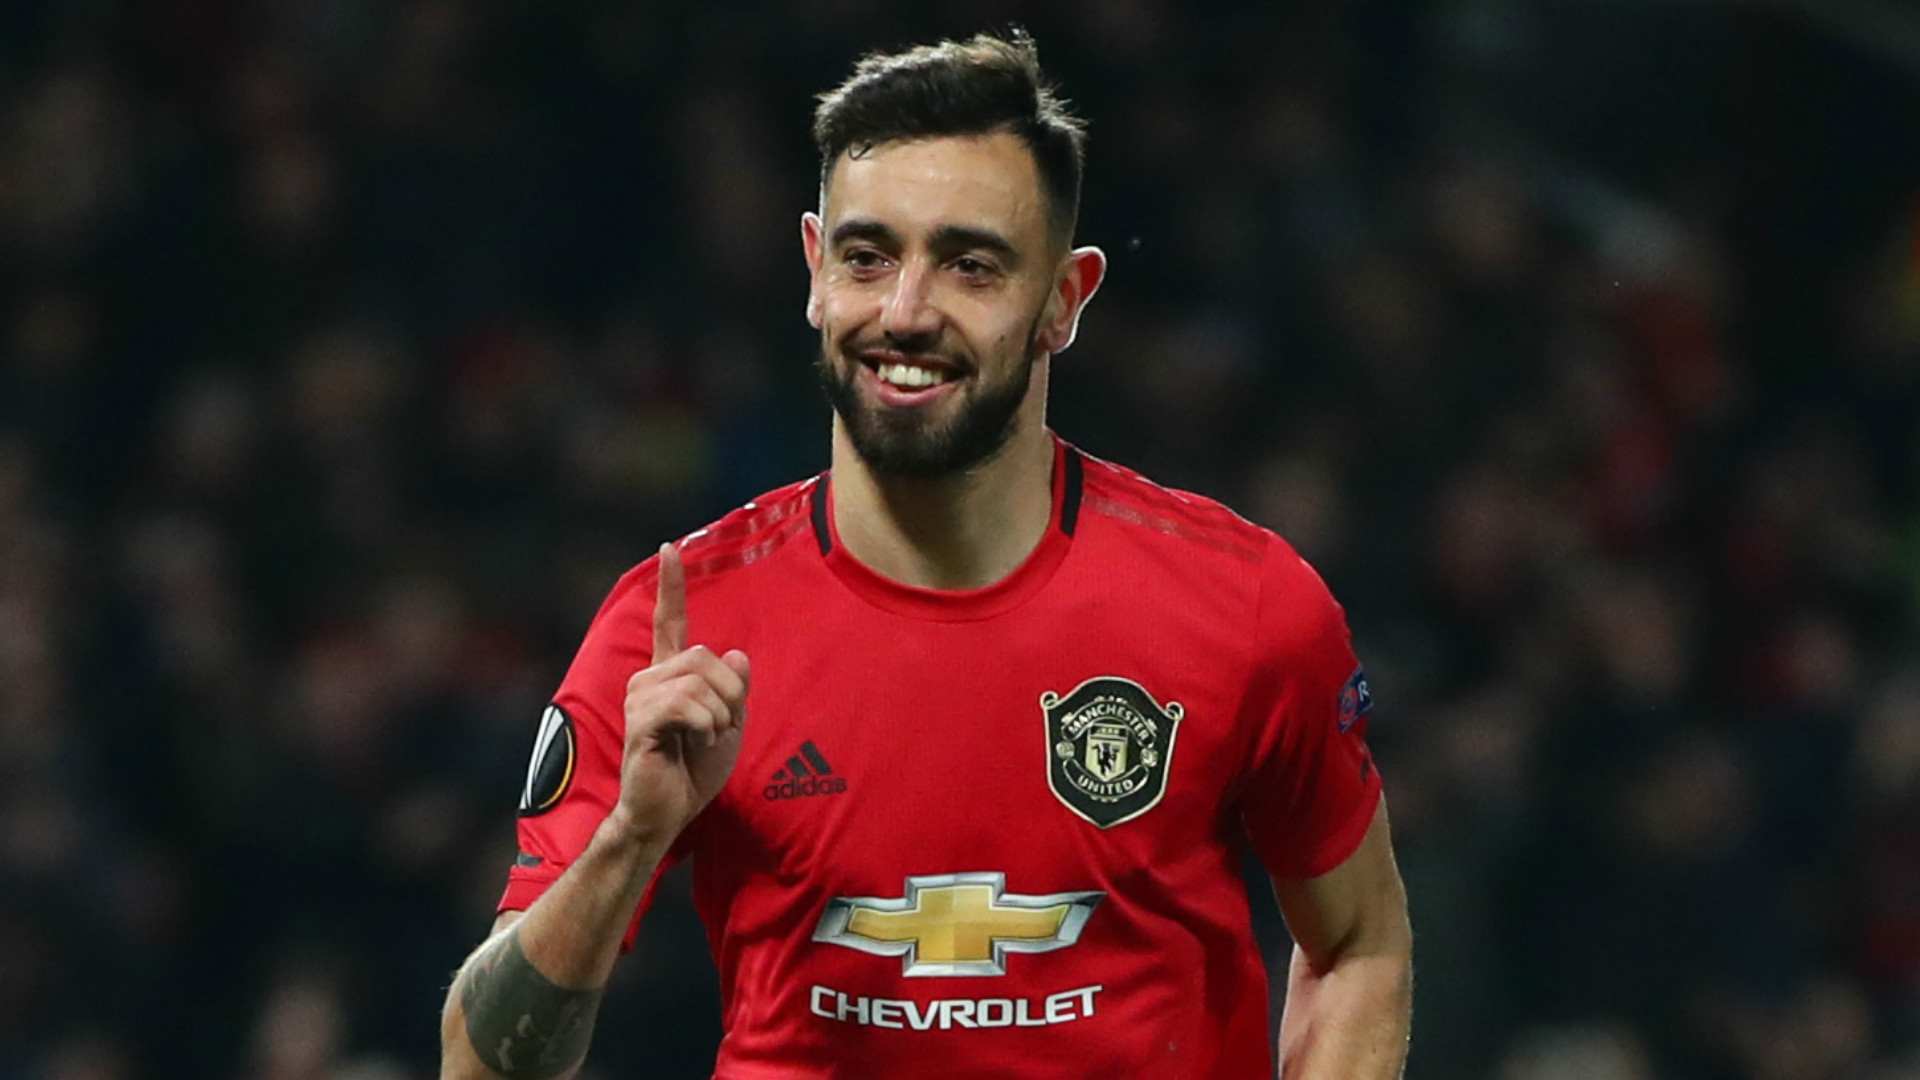 Bruno Fernandes: I started crying after learning of Man Utd move | Goal.com